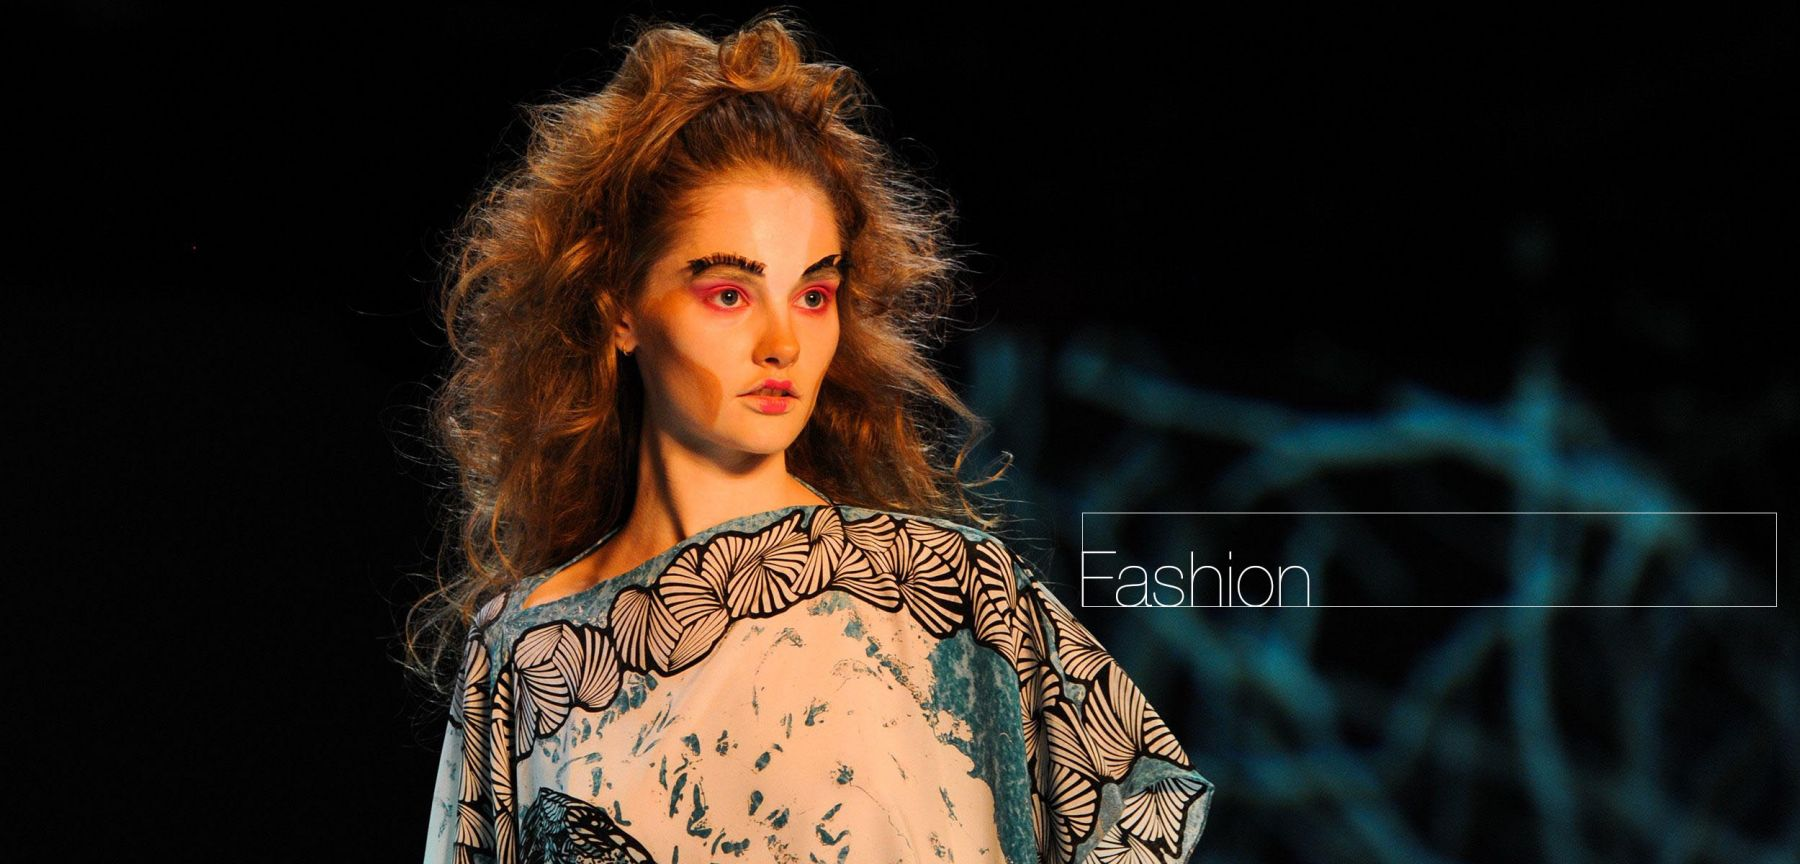 Fashionfotos von Berlin Fashion Week Johny Dar Fashionshow